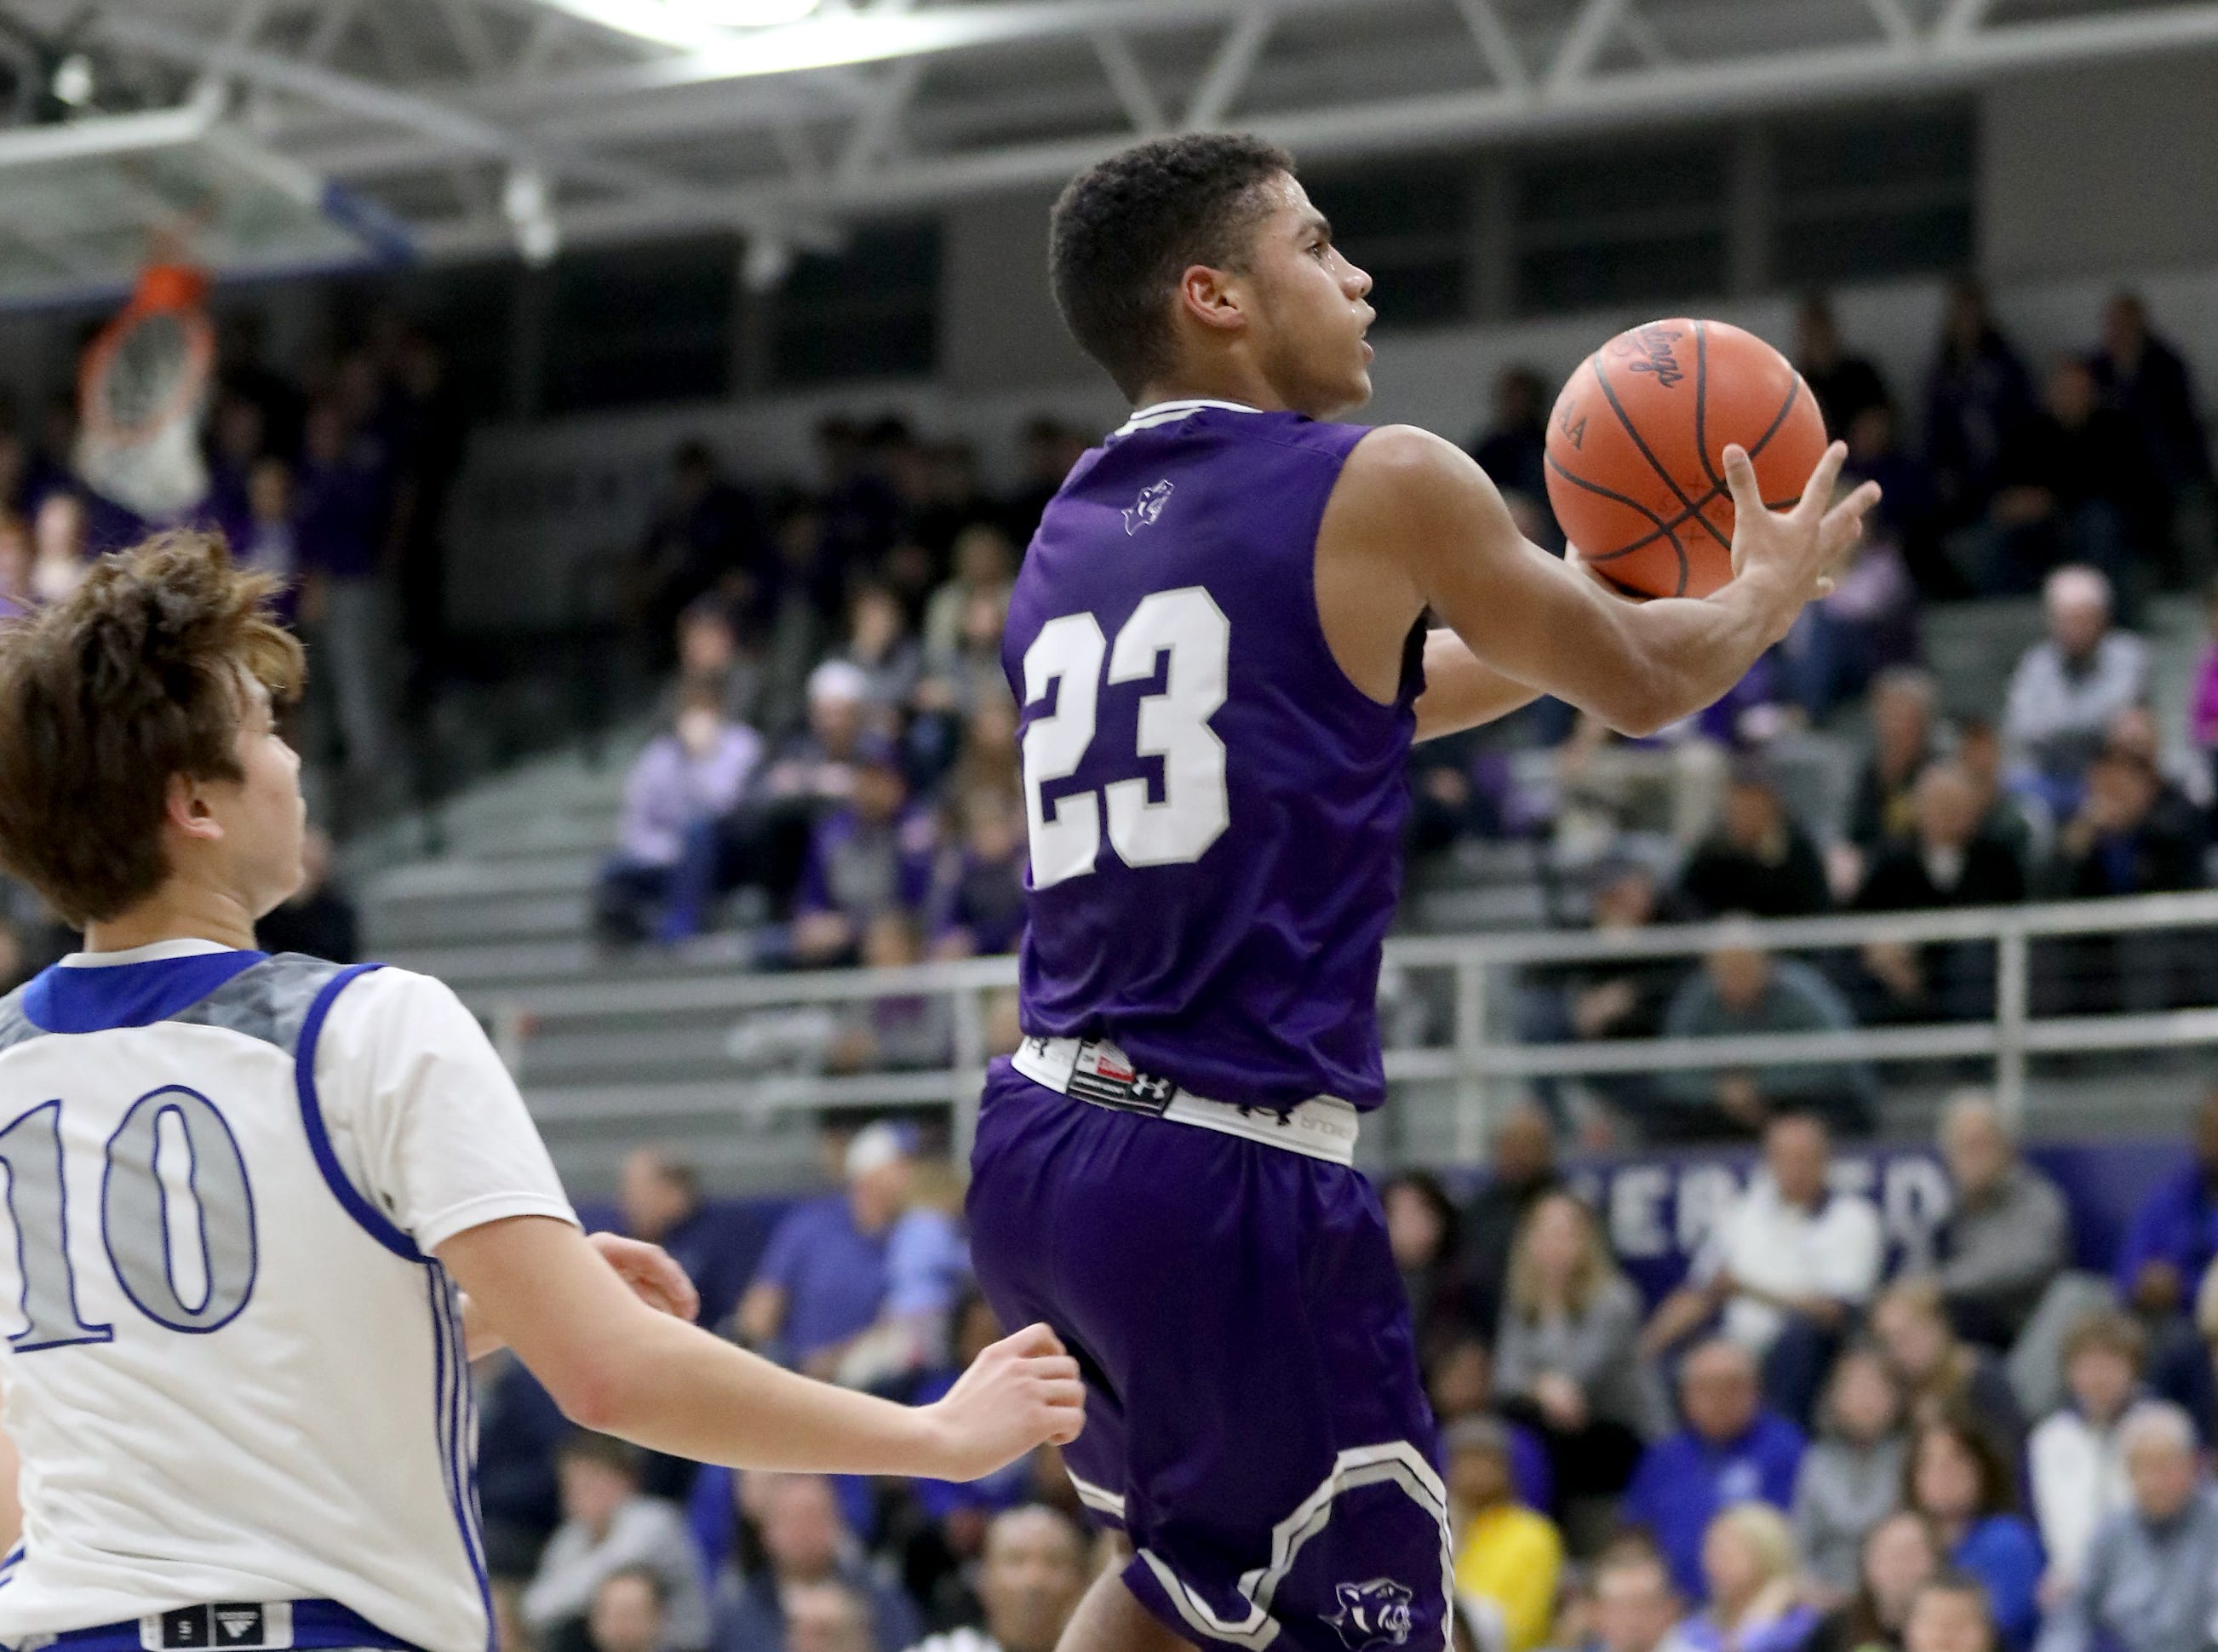 Elder guard Bryson Merz (23) drives to the basket past St. Xavier guard Nathan  Stockman during their basketball game Friday, Feb. 1, 2019.